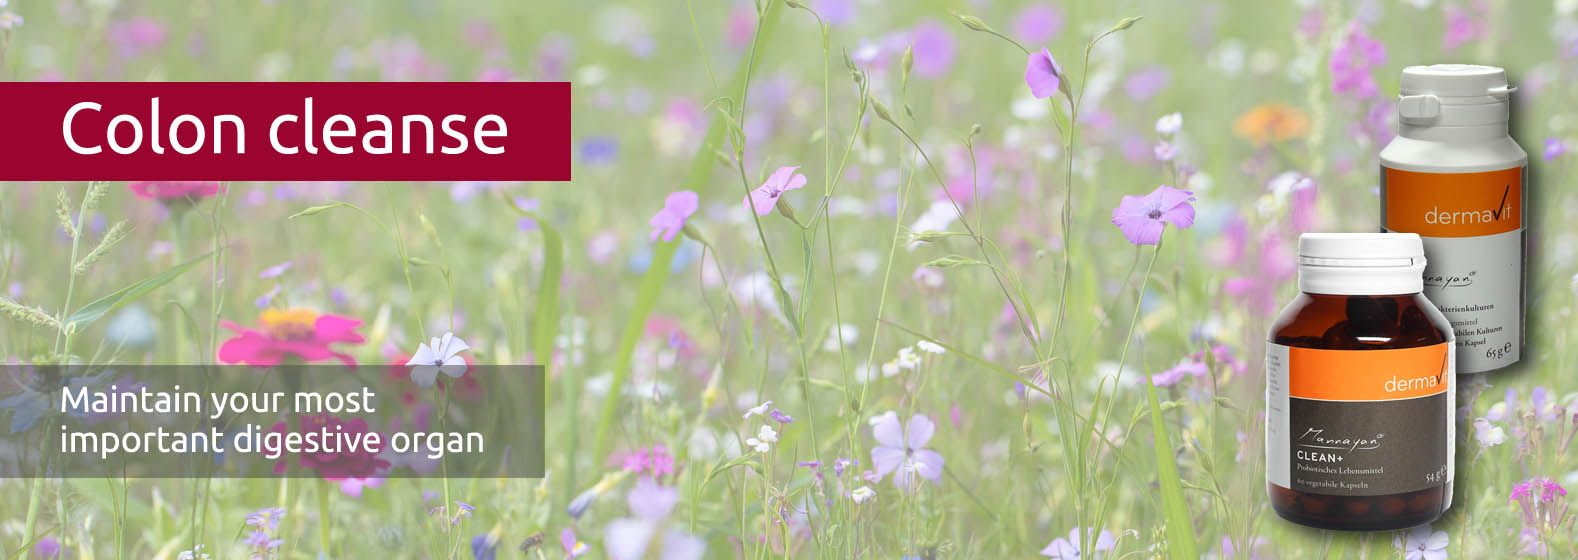 The natural flower meadow is as dense and varied as a healthy intestine flora.